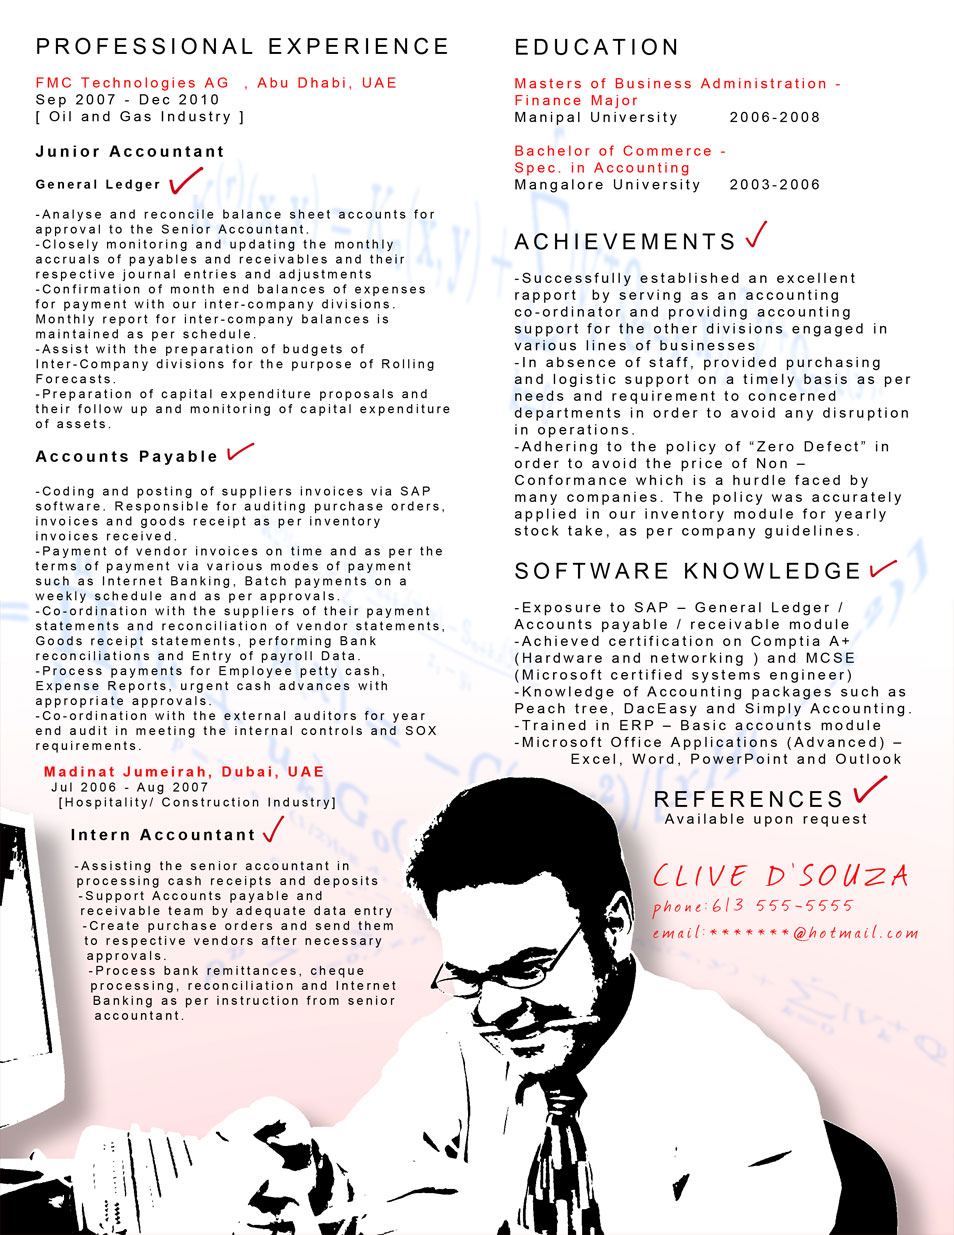 50 creative cv resume design inspiration resume accountant